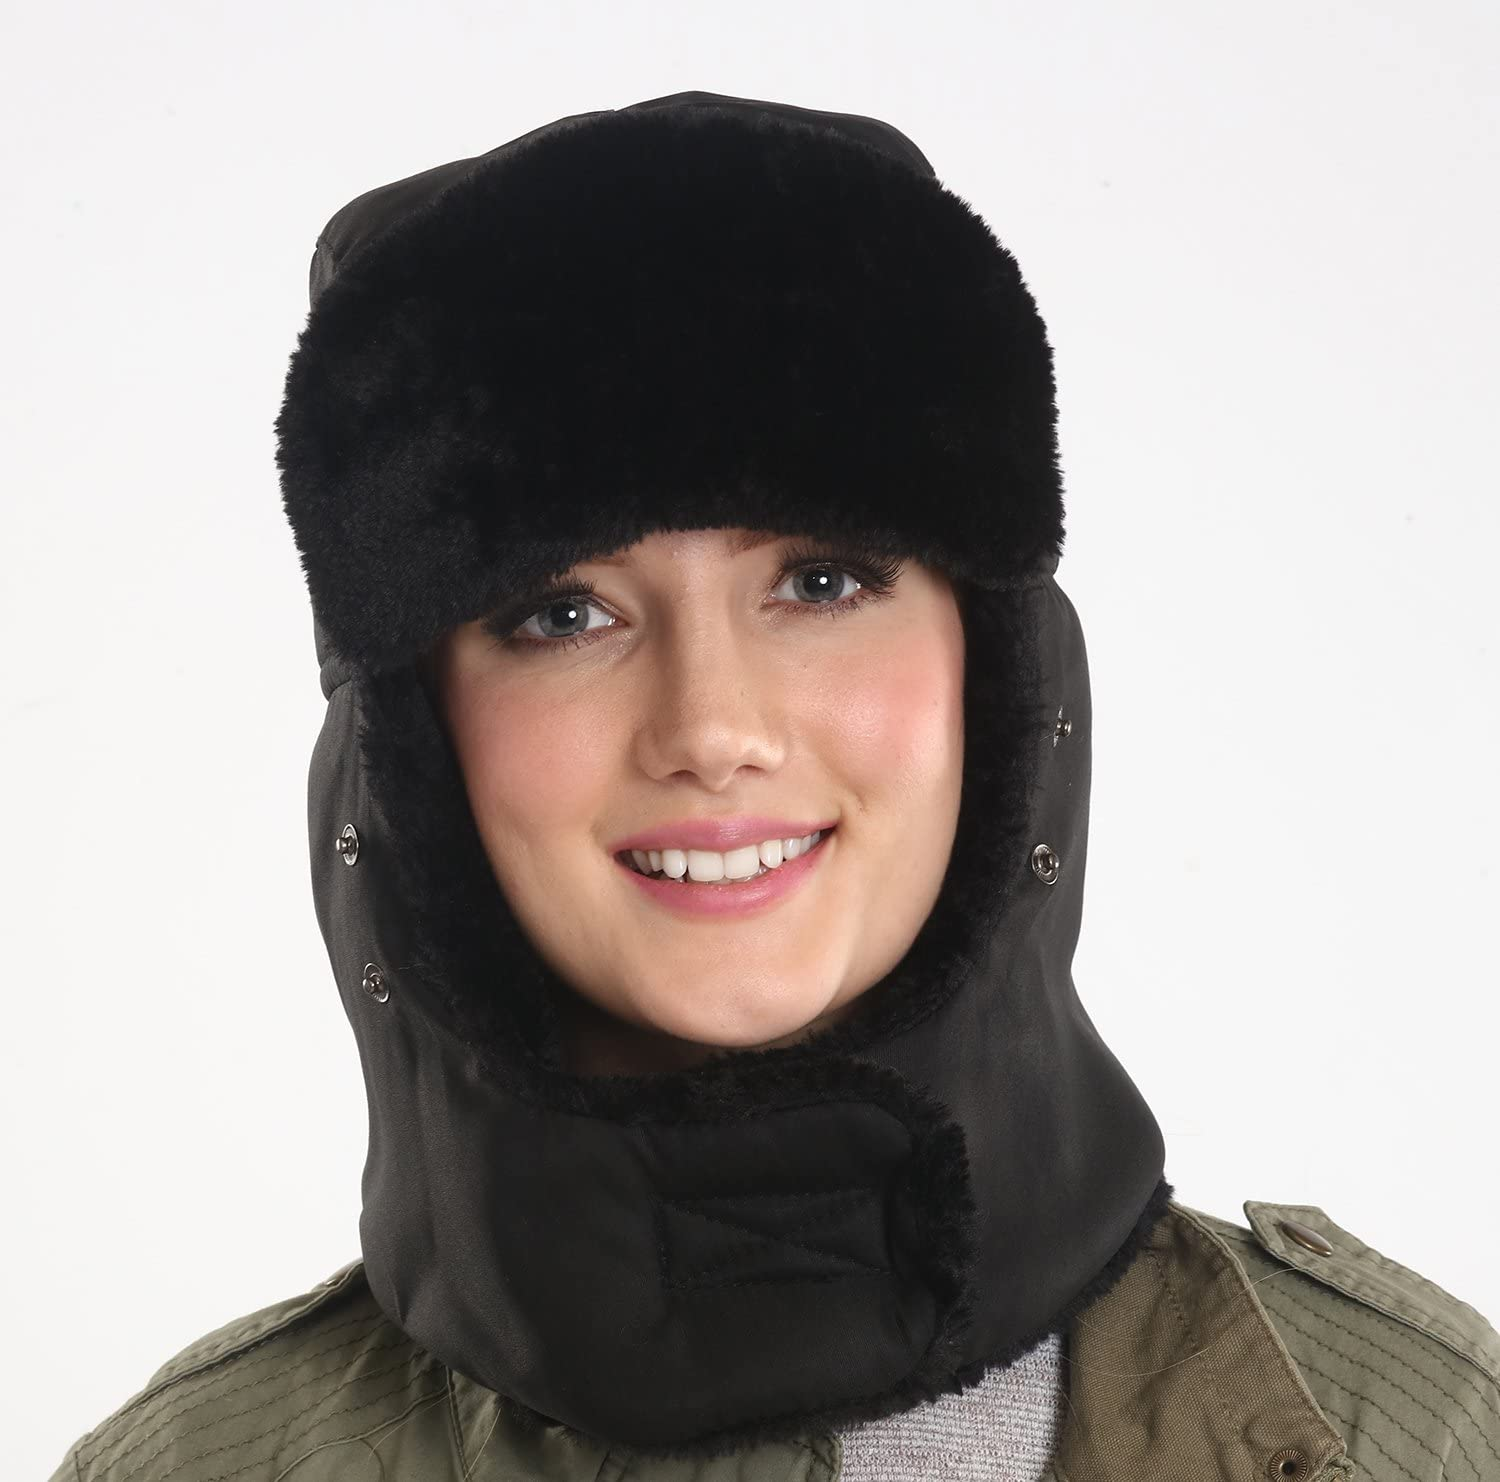 Waterproof Windproof Shell Tough Headwear Trapper Hat Ushanka Aviator Hat for Serious Expeditions /& Serious Style